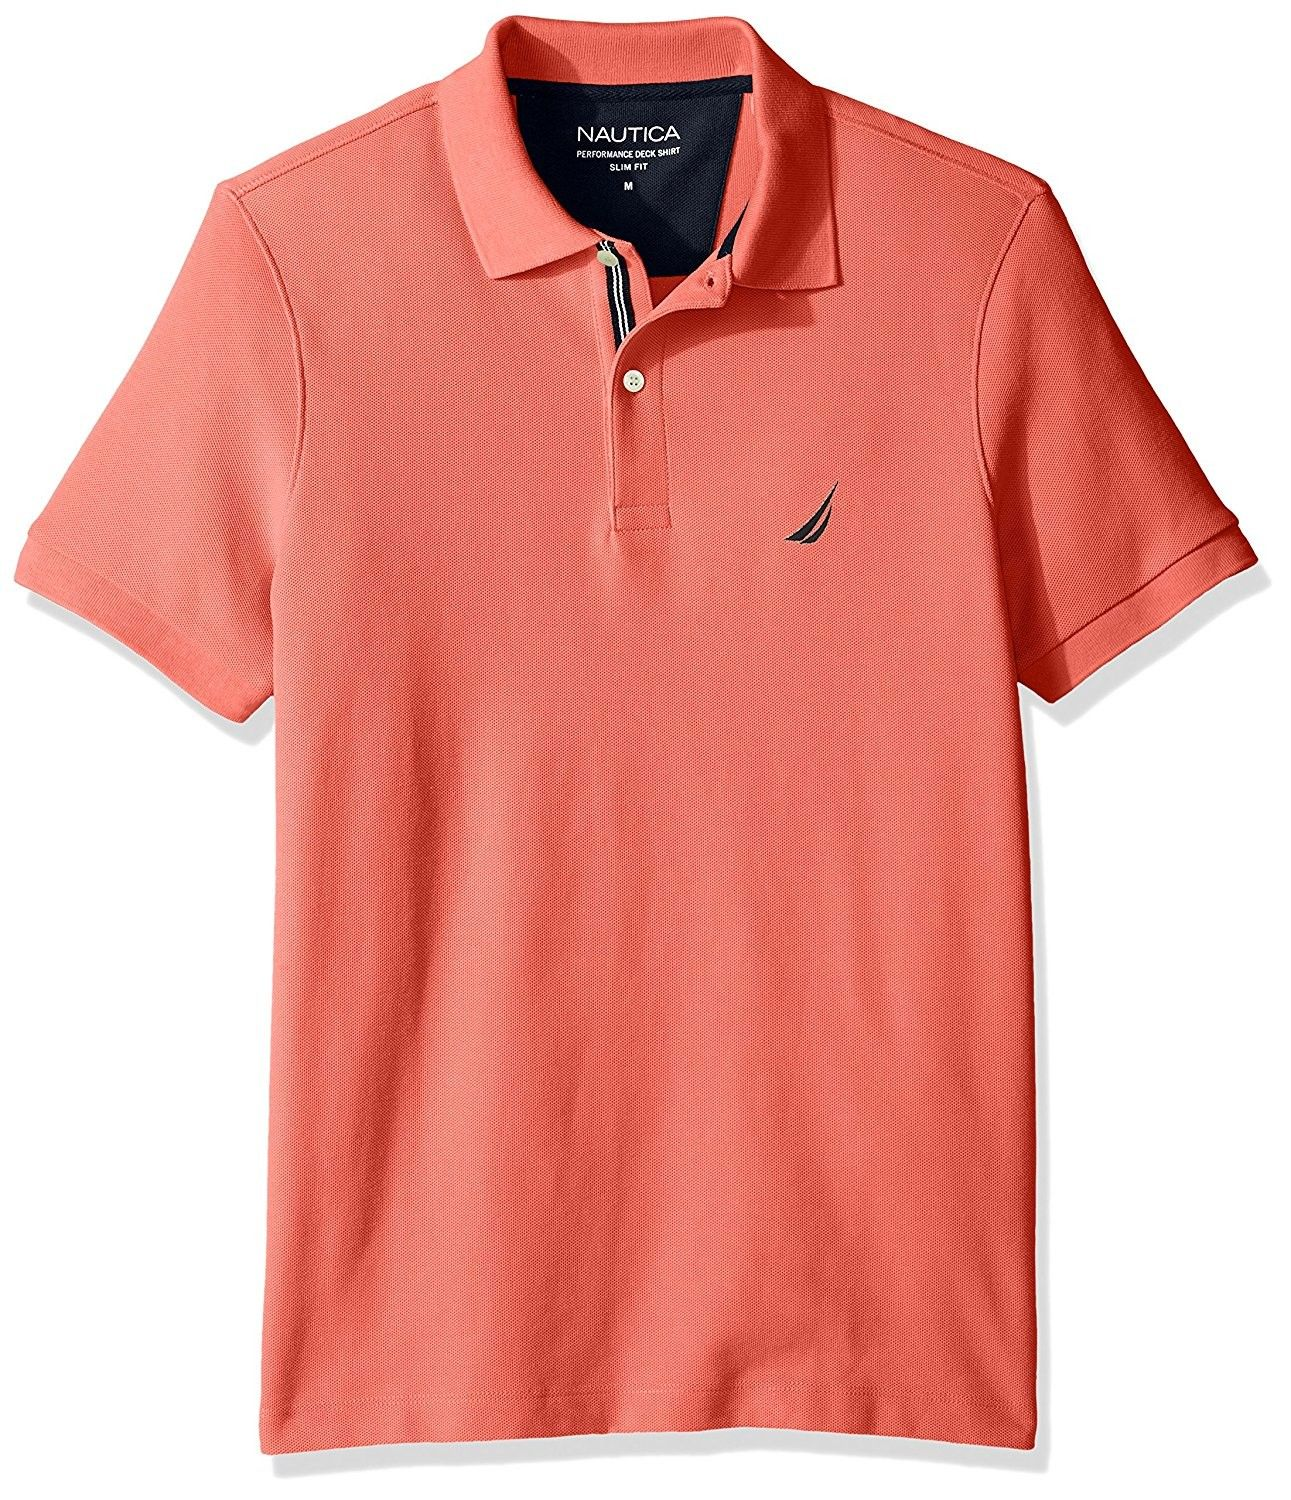 f2212d7ae5df6 Nautica Men s Short Sleeve Performance Pique Polo With Tipping ...